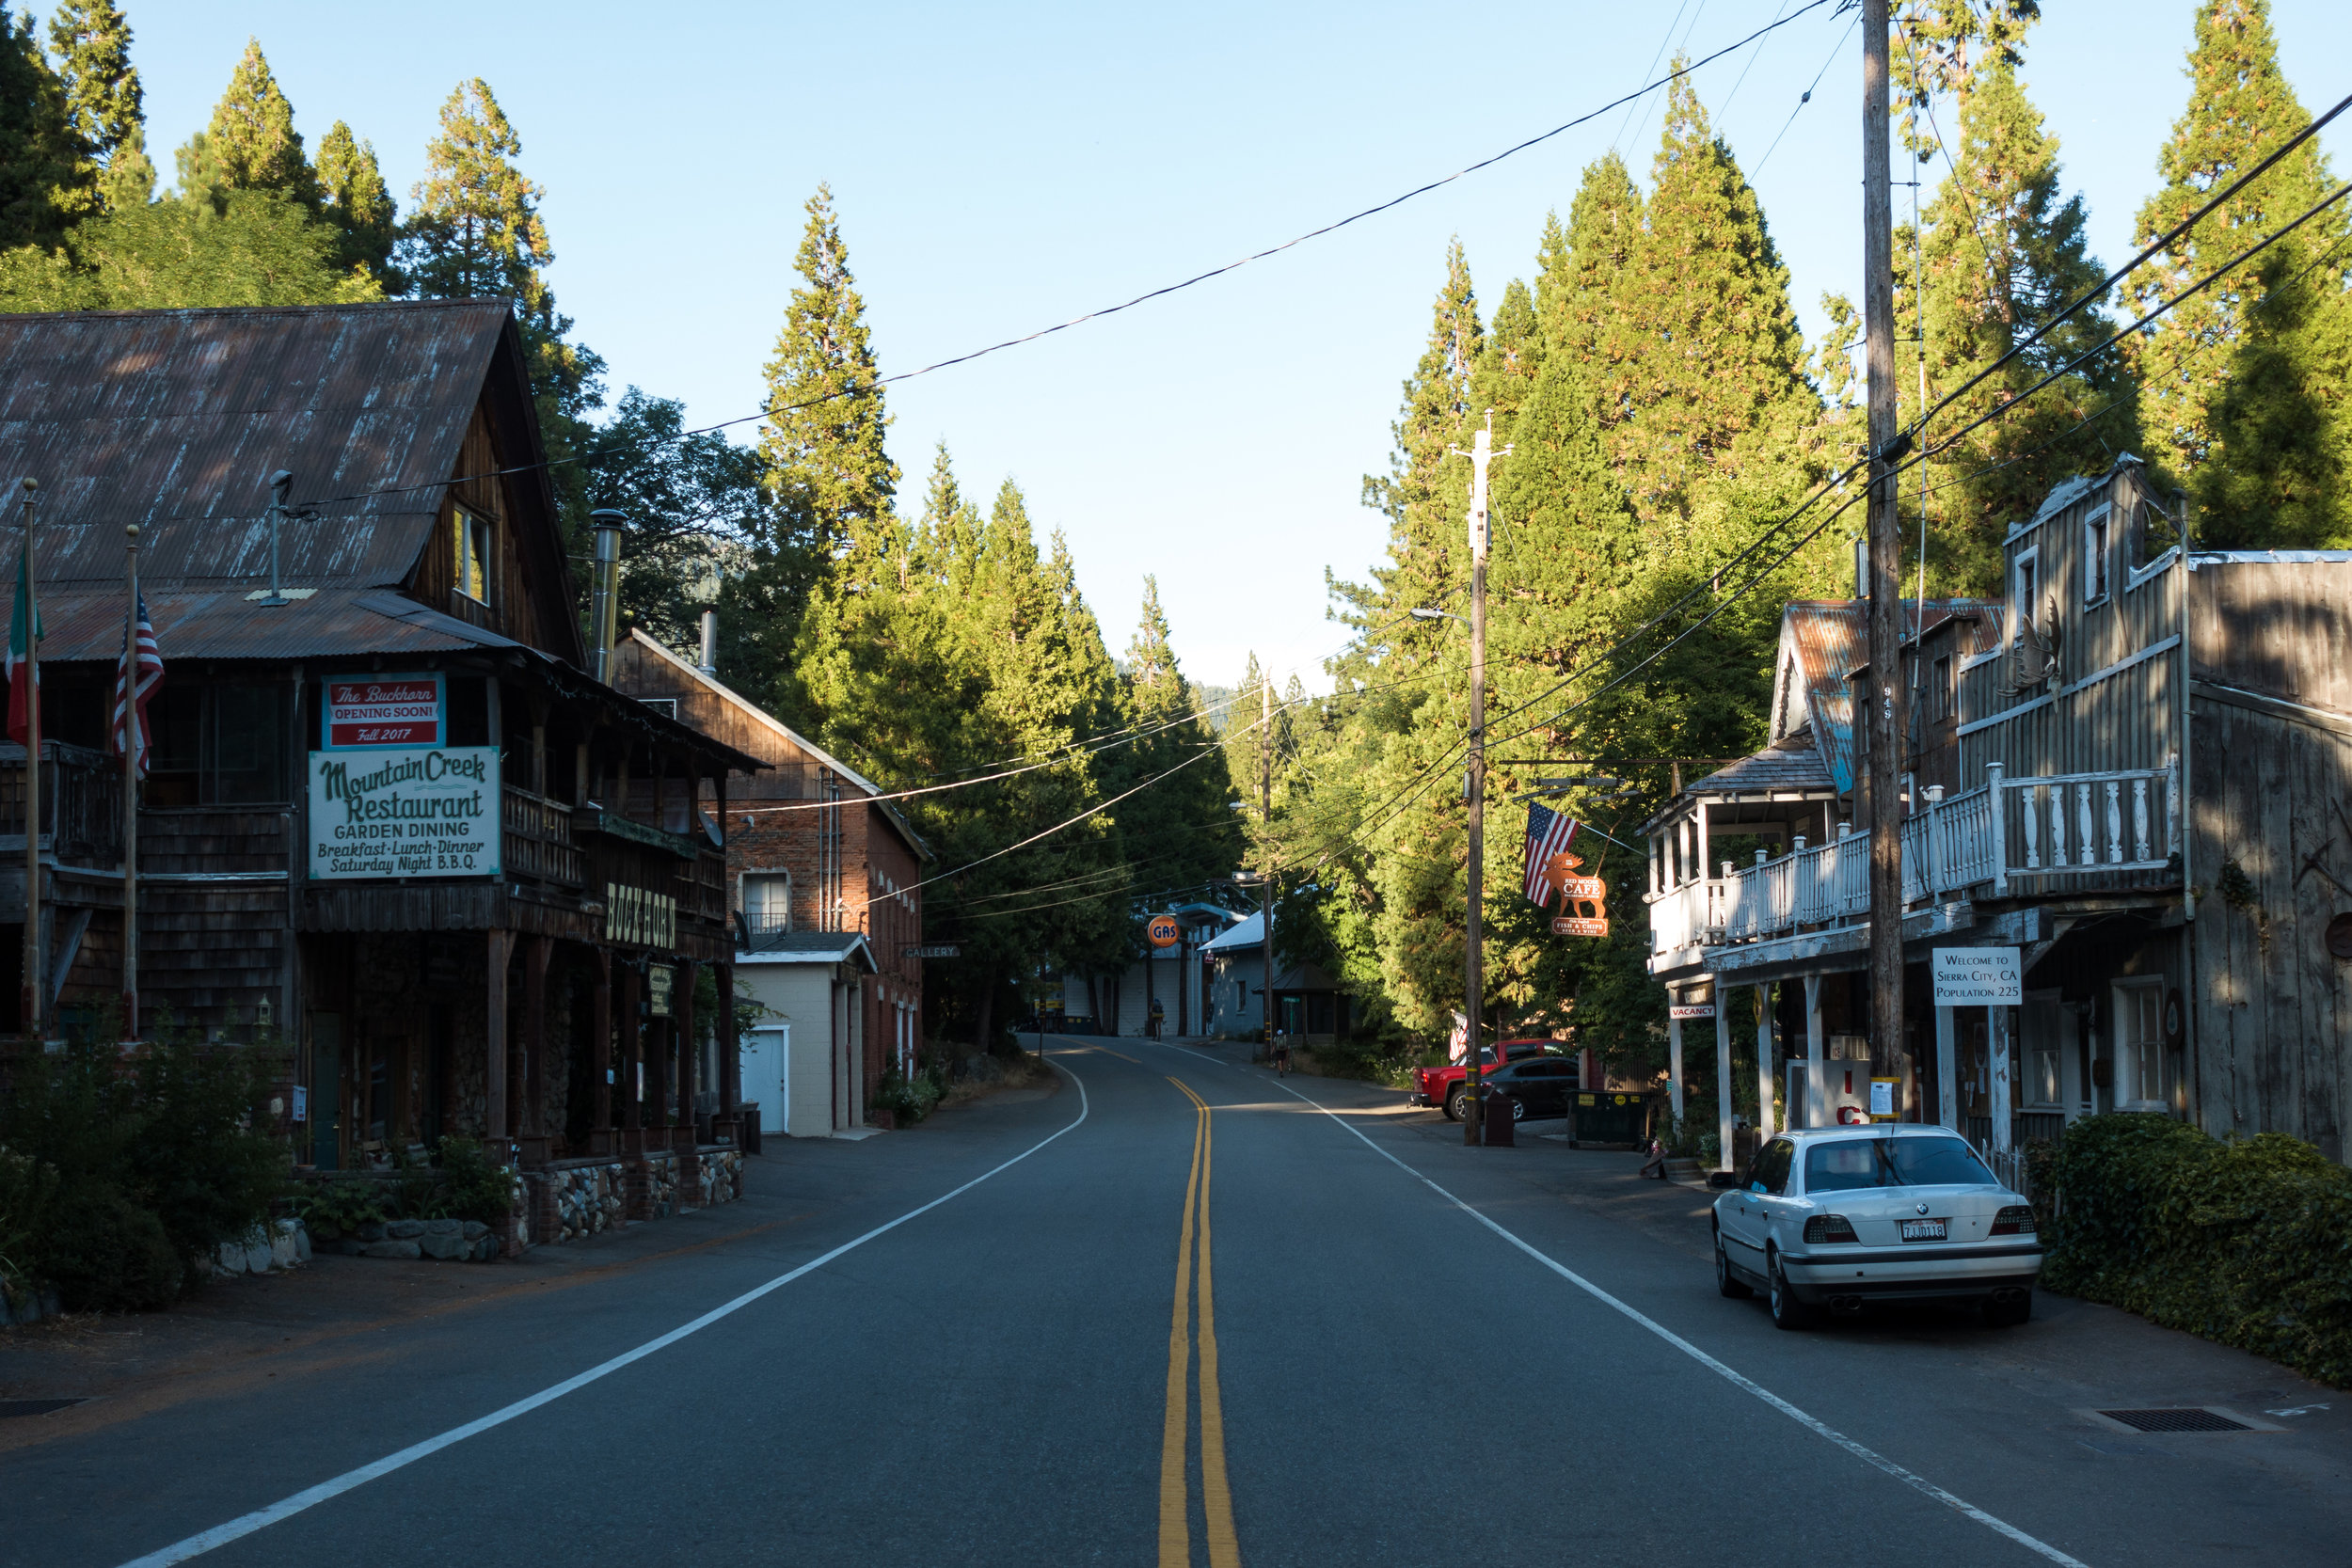 sierra-city-california.jpg